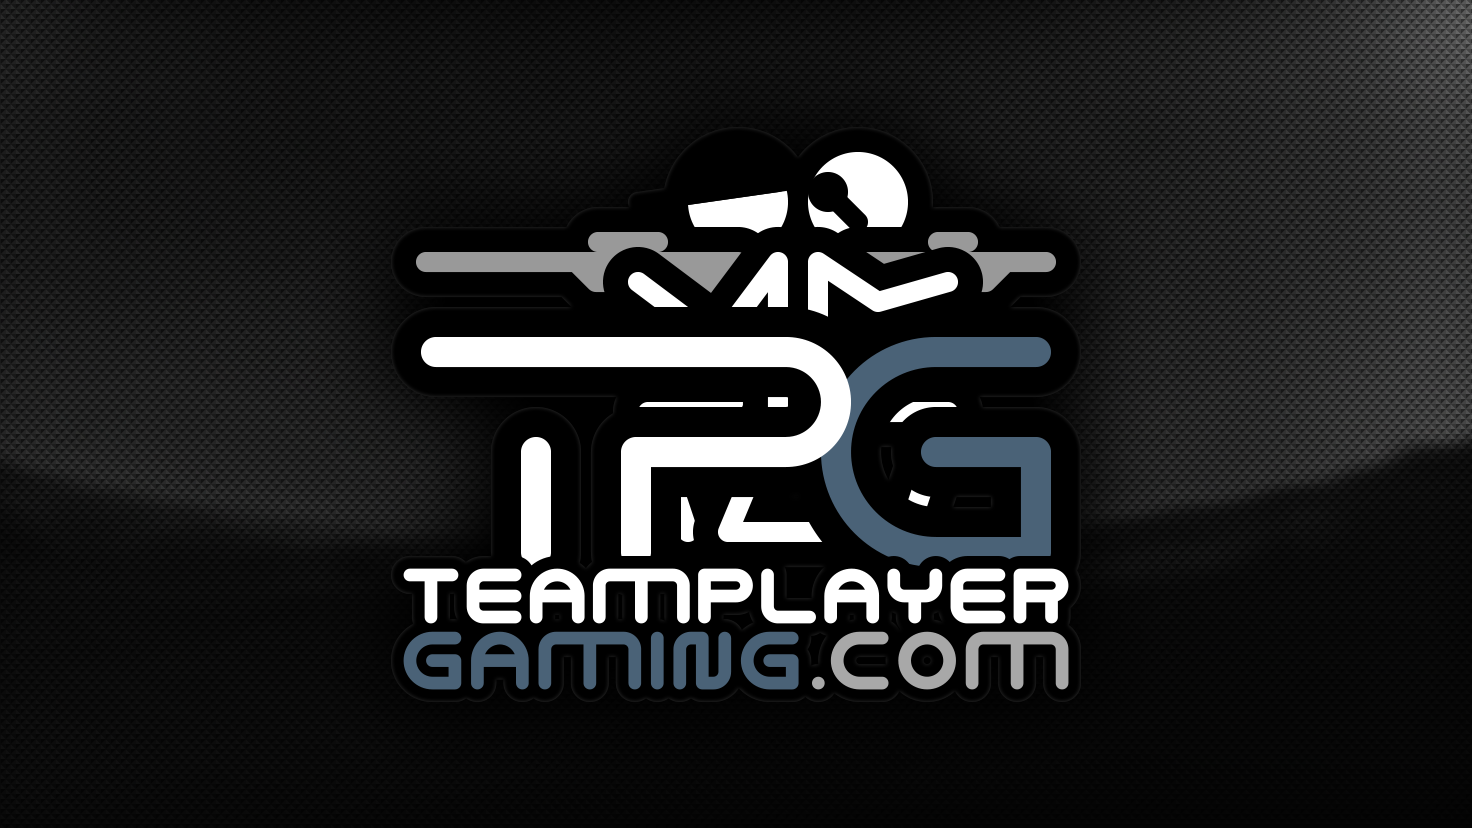 Play time-tpg_logo_16x9-png